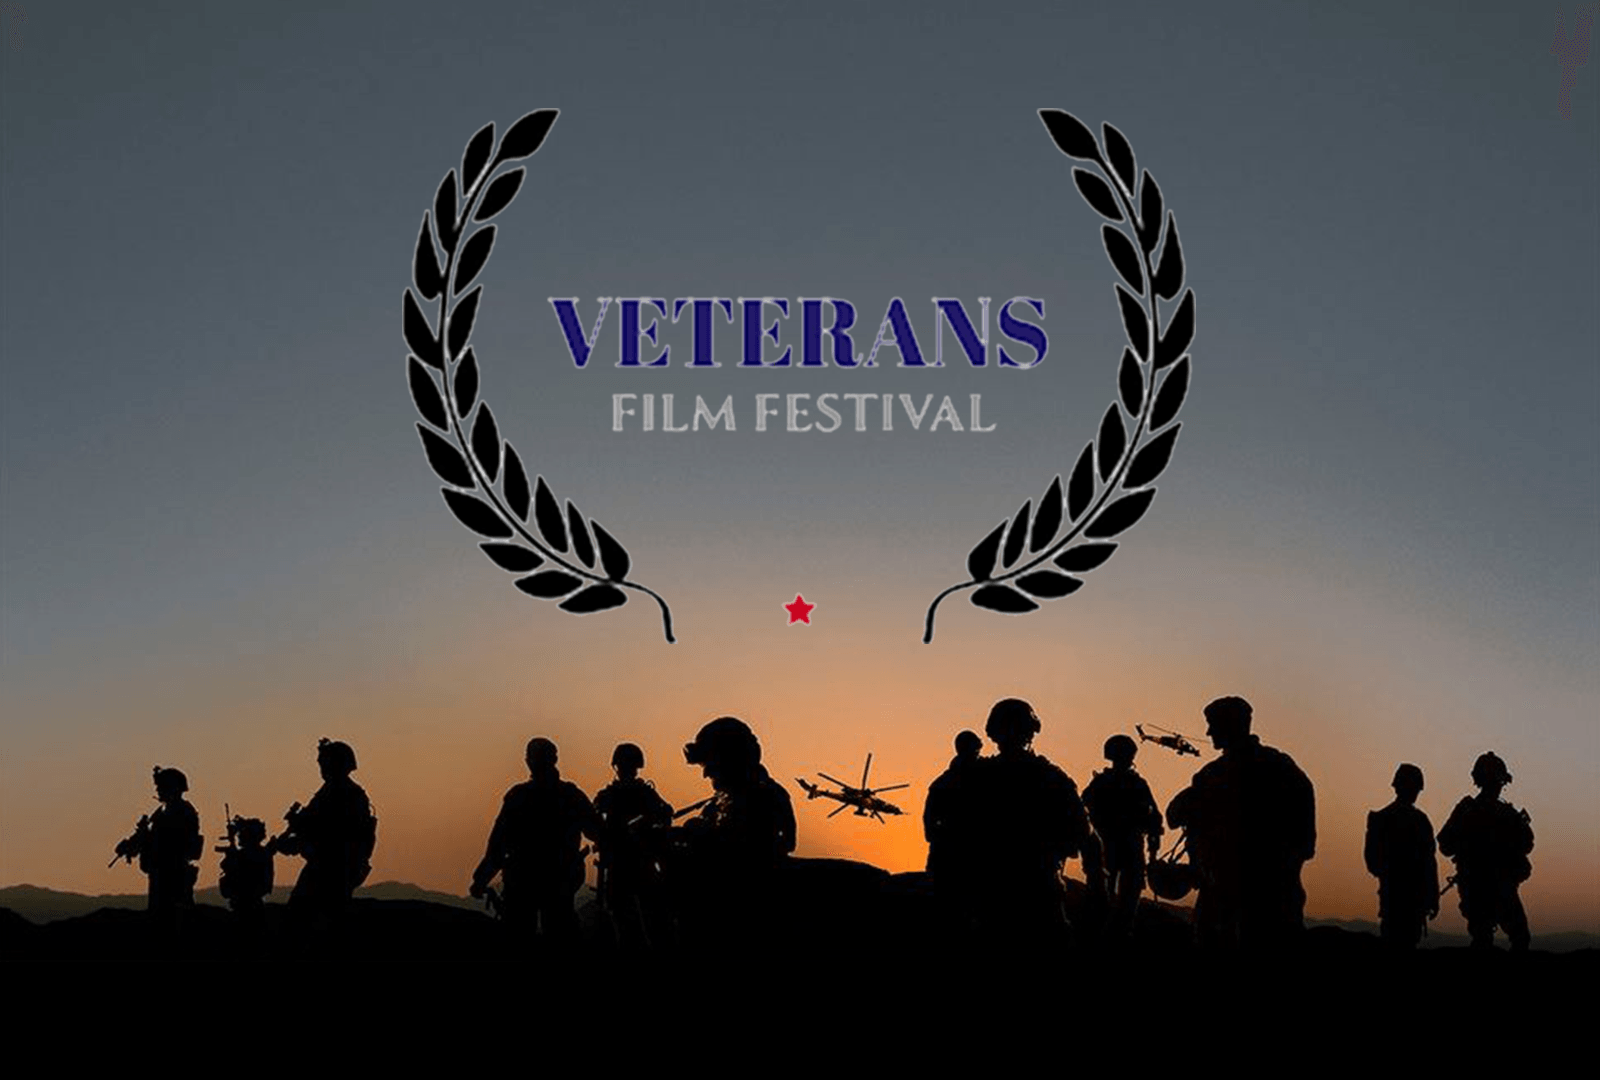 Veterans Film Festival Virtual Event - Charlotte Mansfield, A Woman Photographer Goes To War